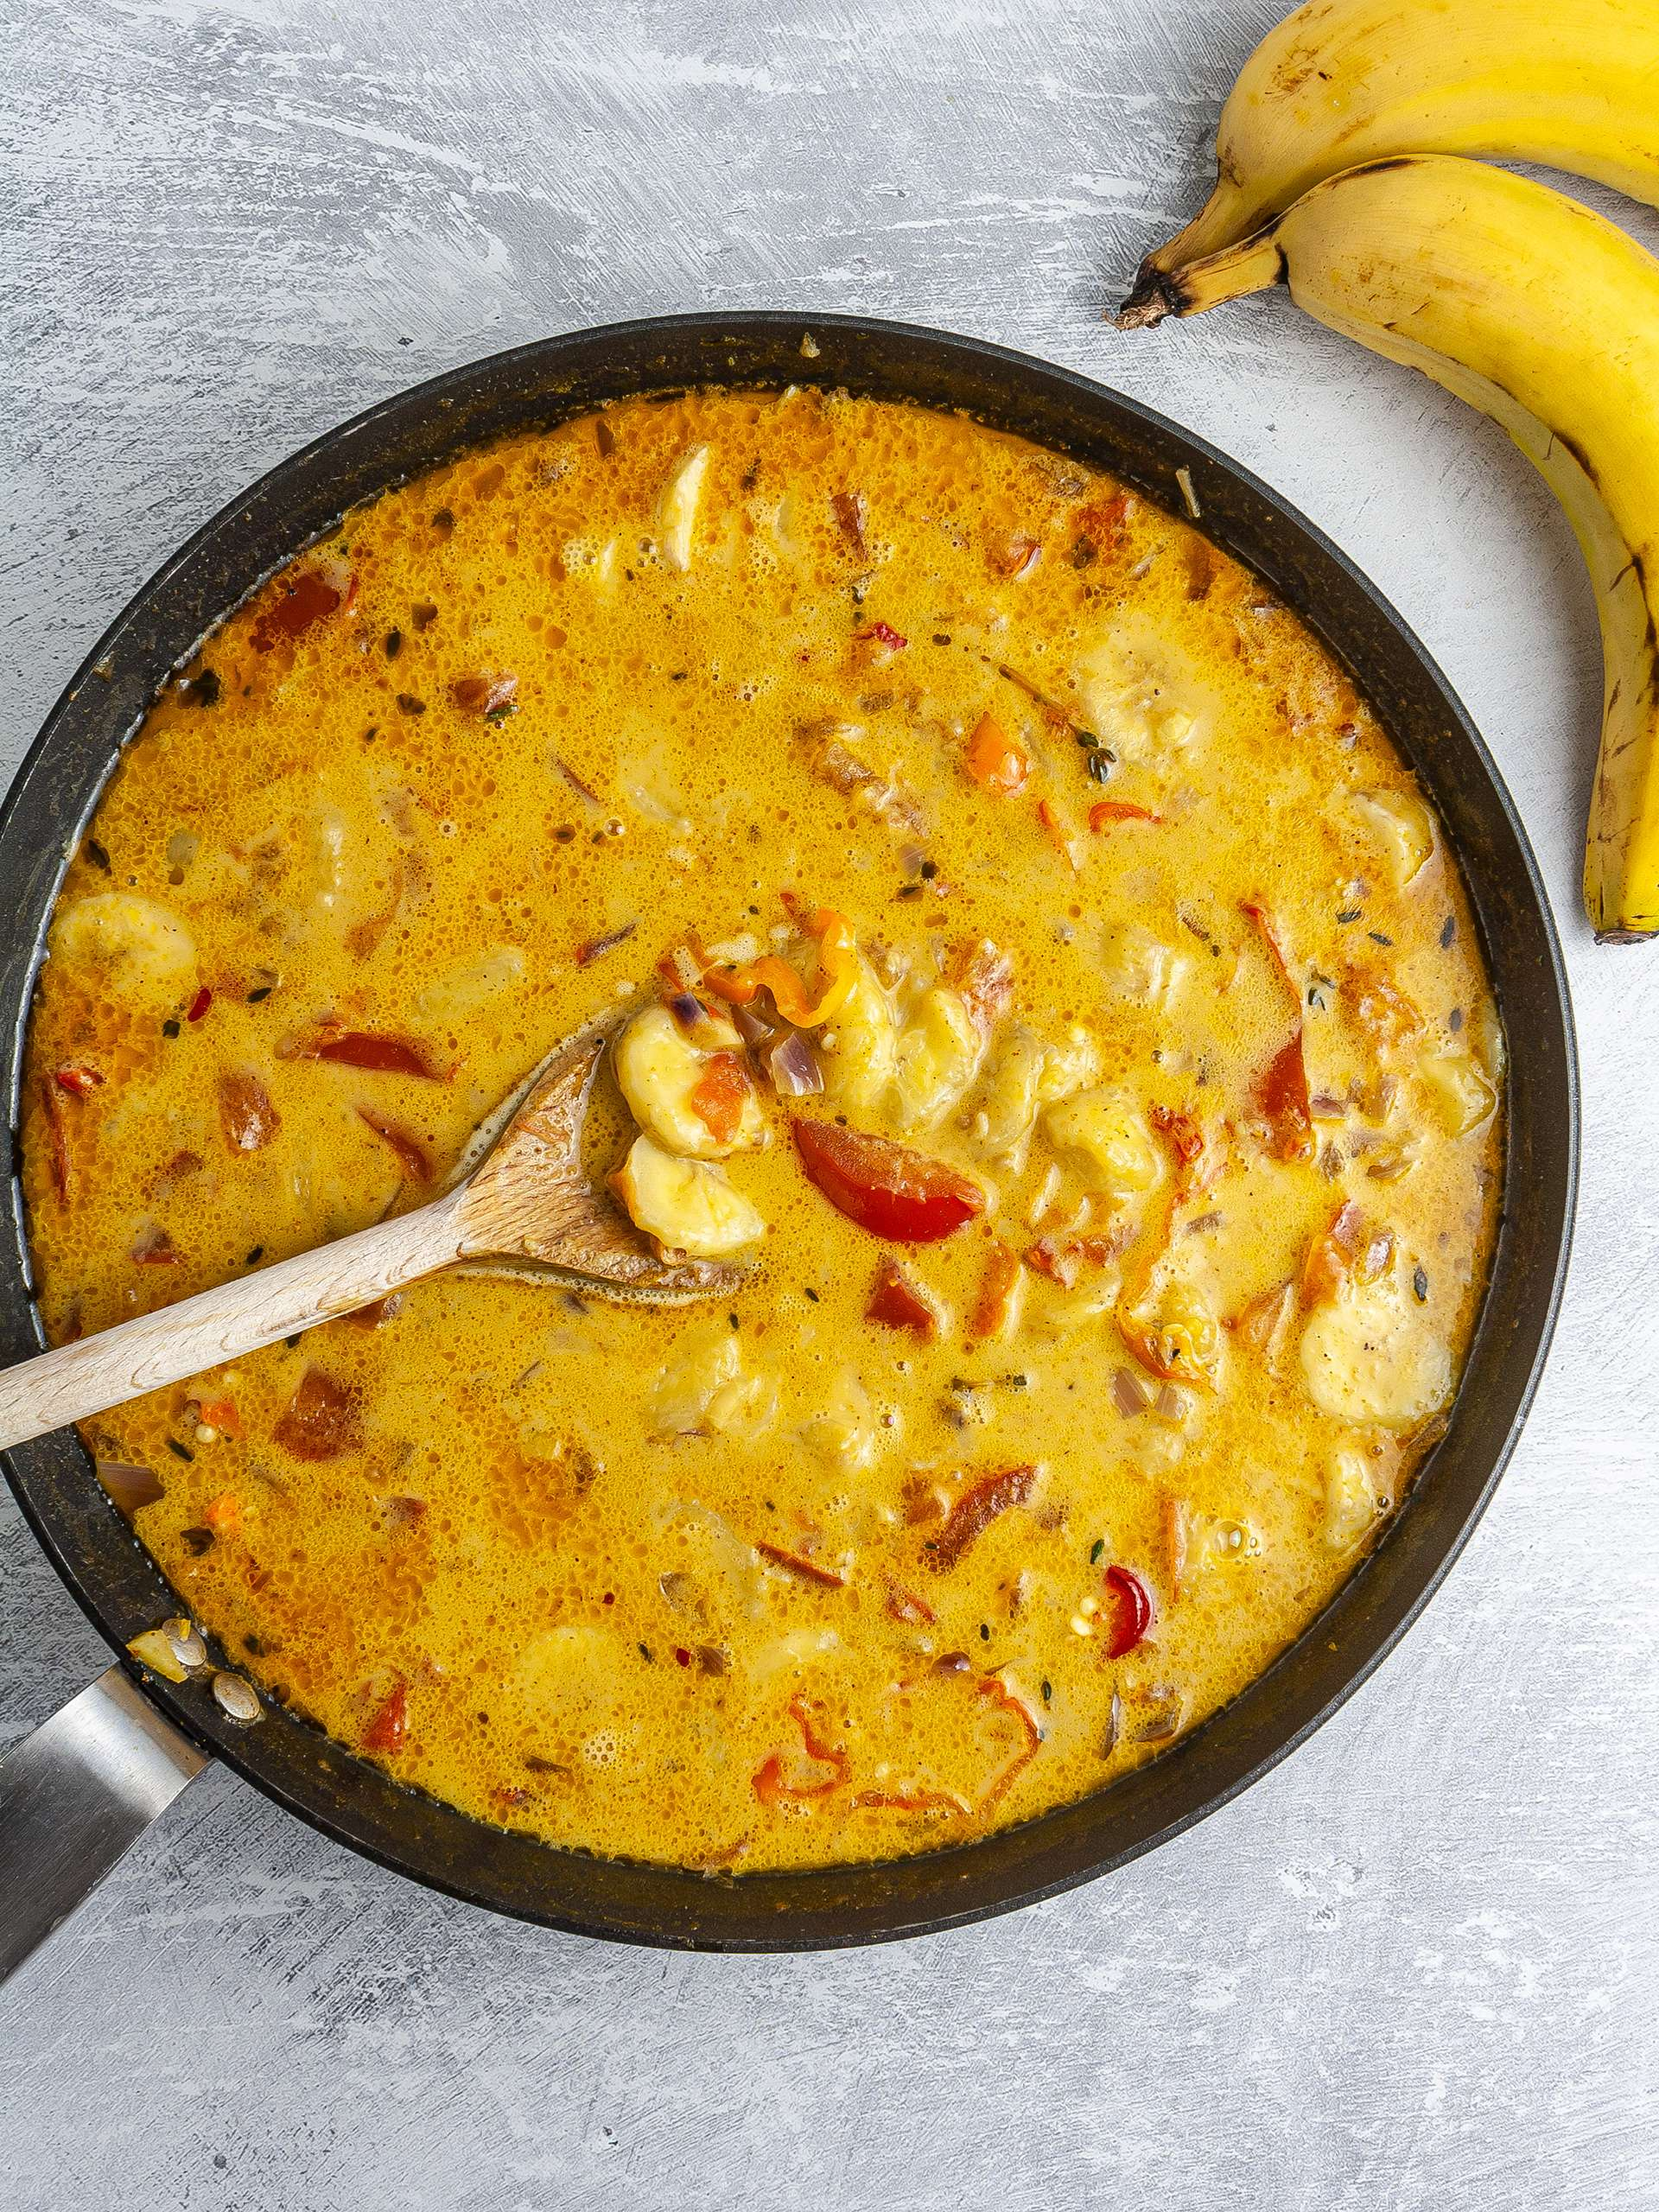 Sliced bananas added to the coconut curry